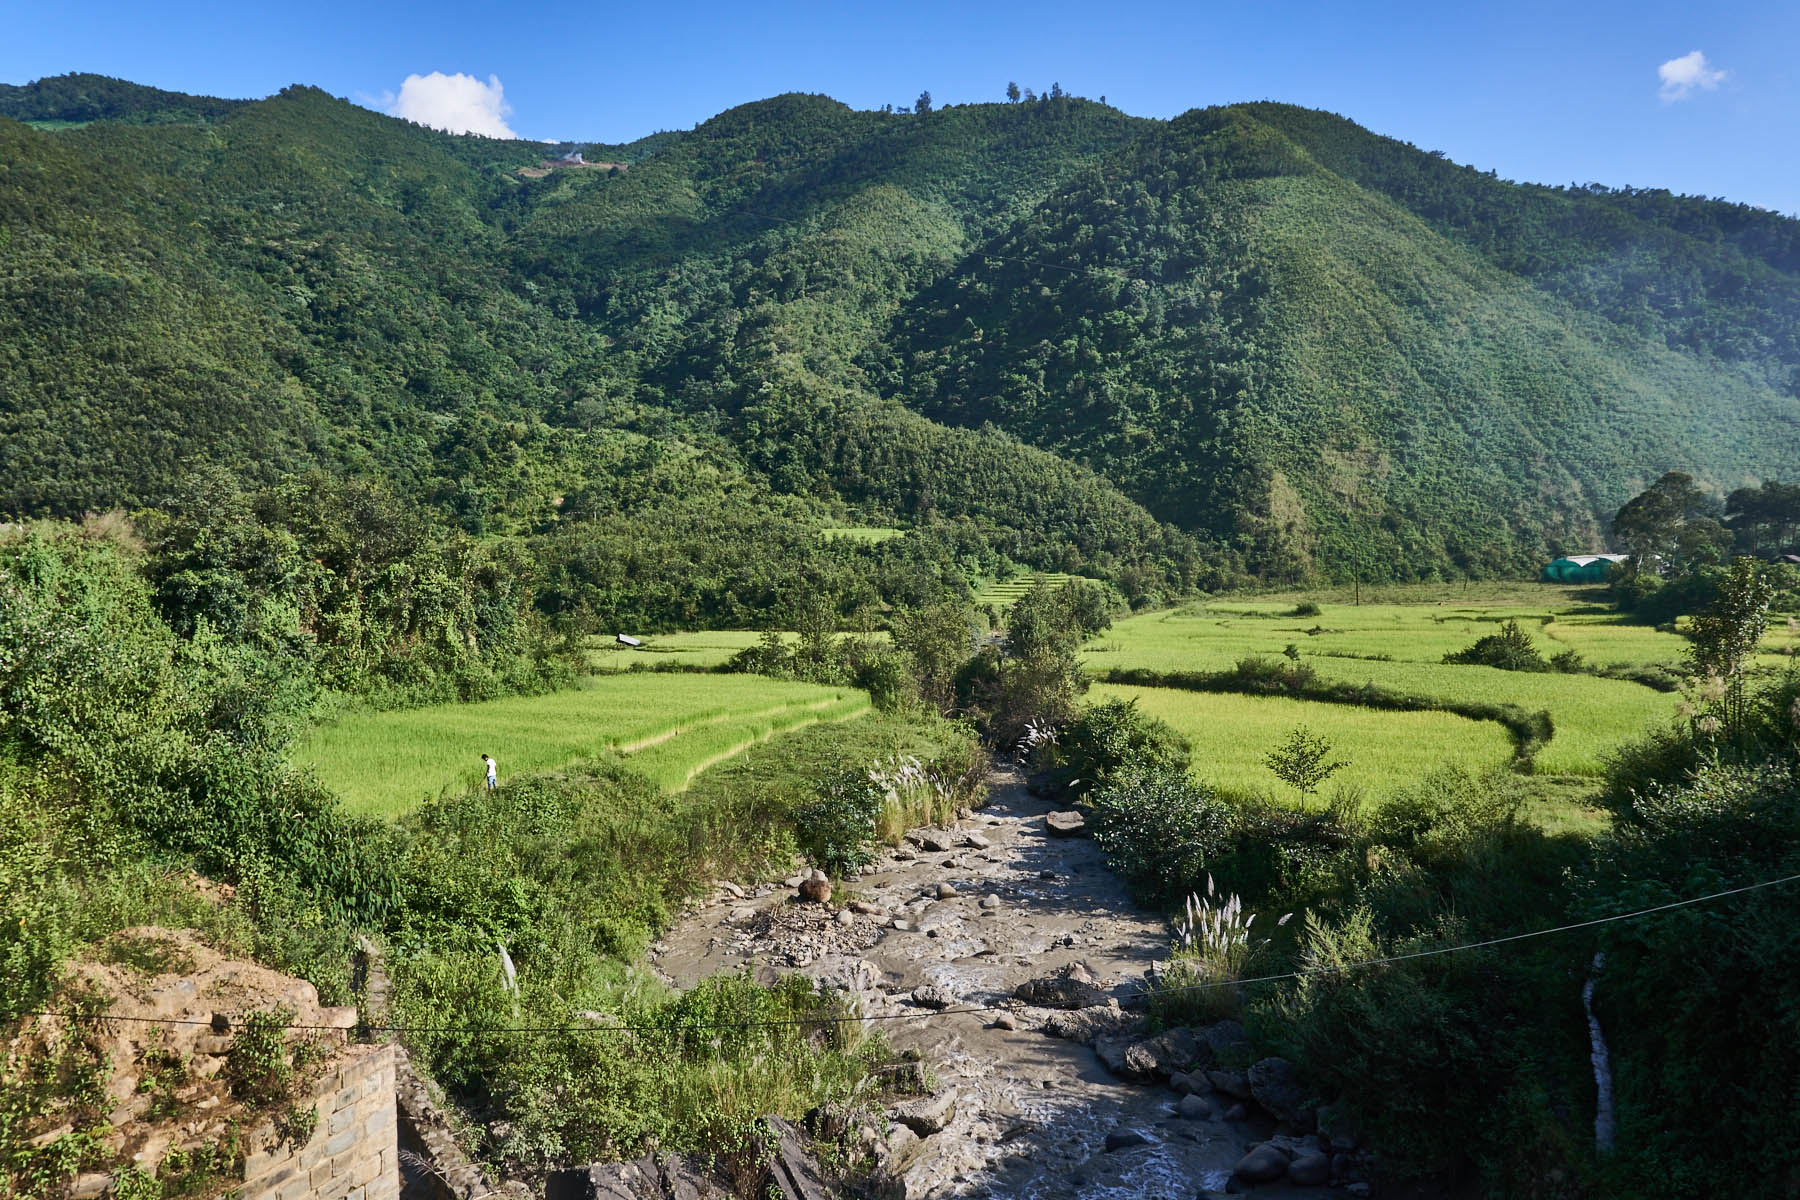 Paddy fields, river and hill